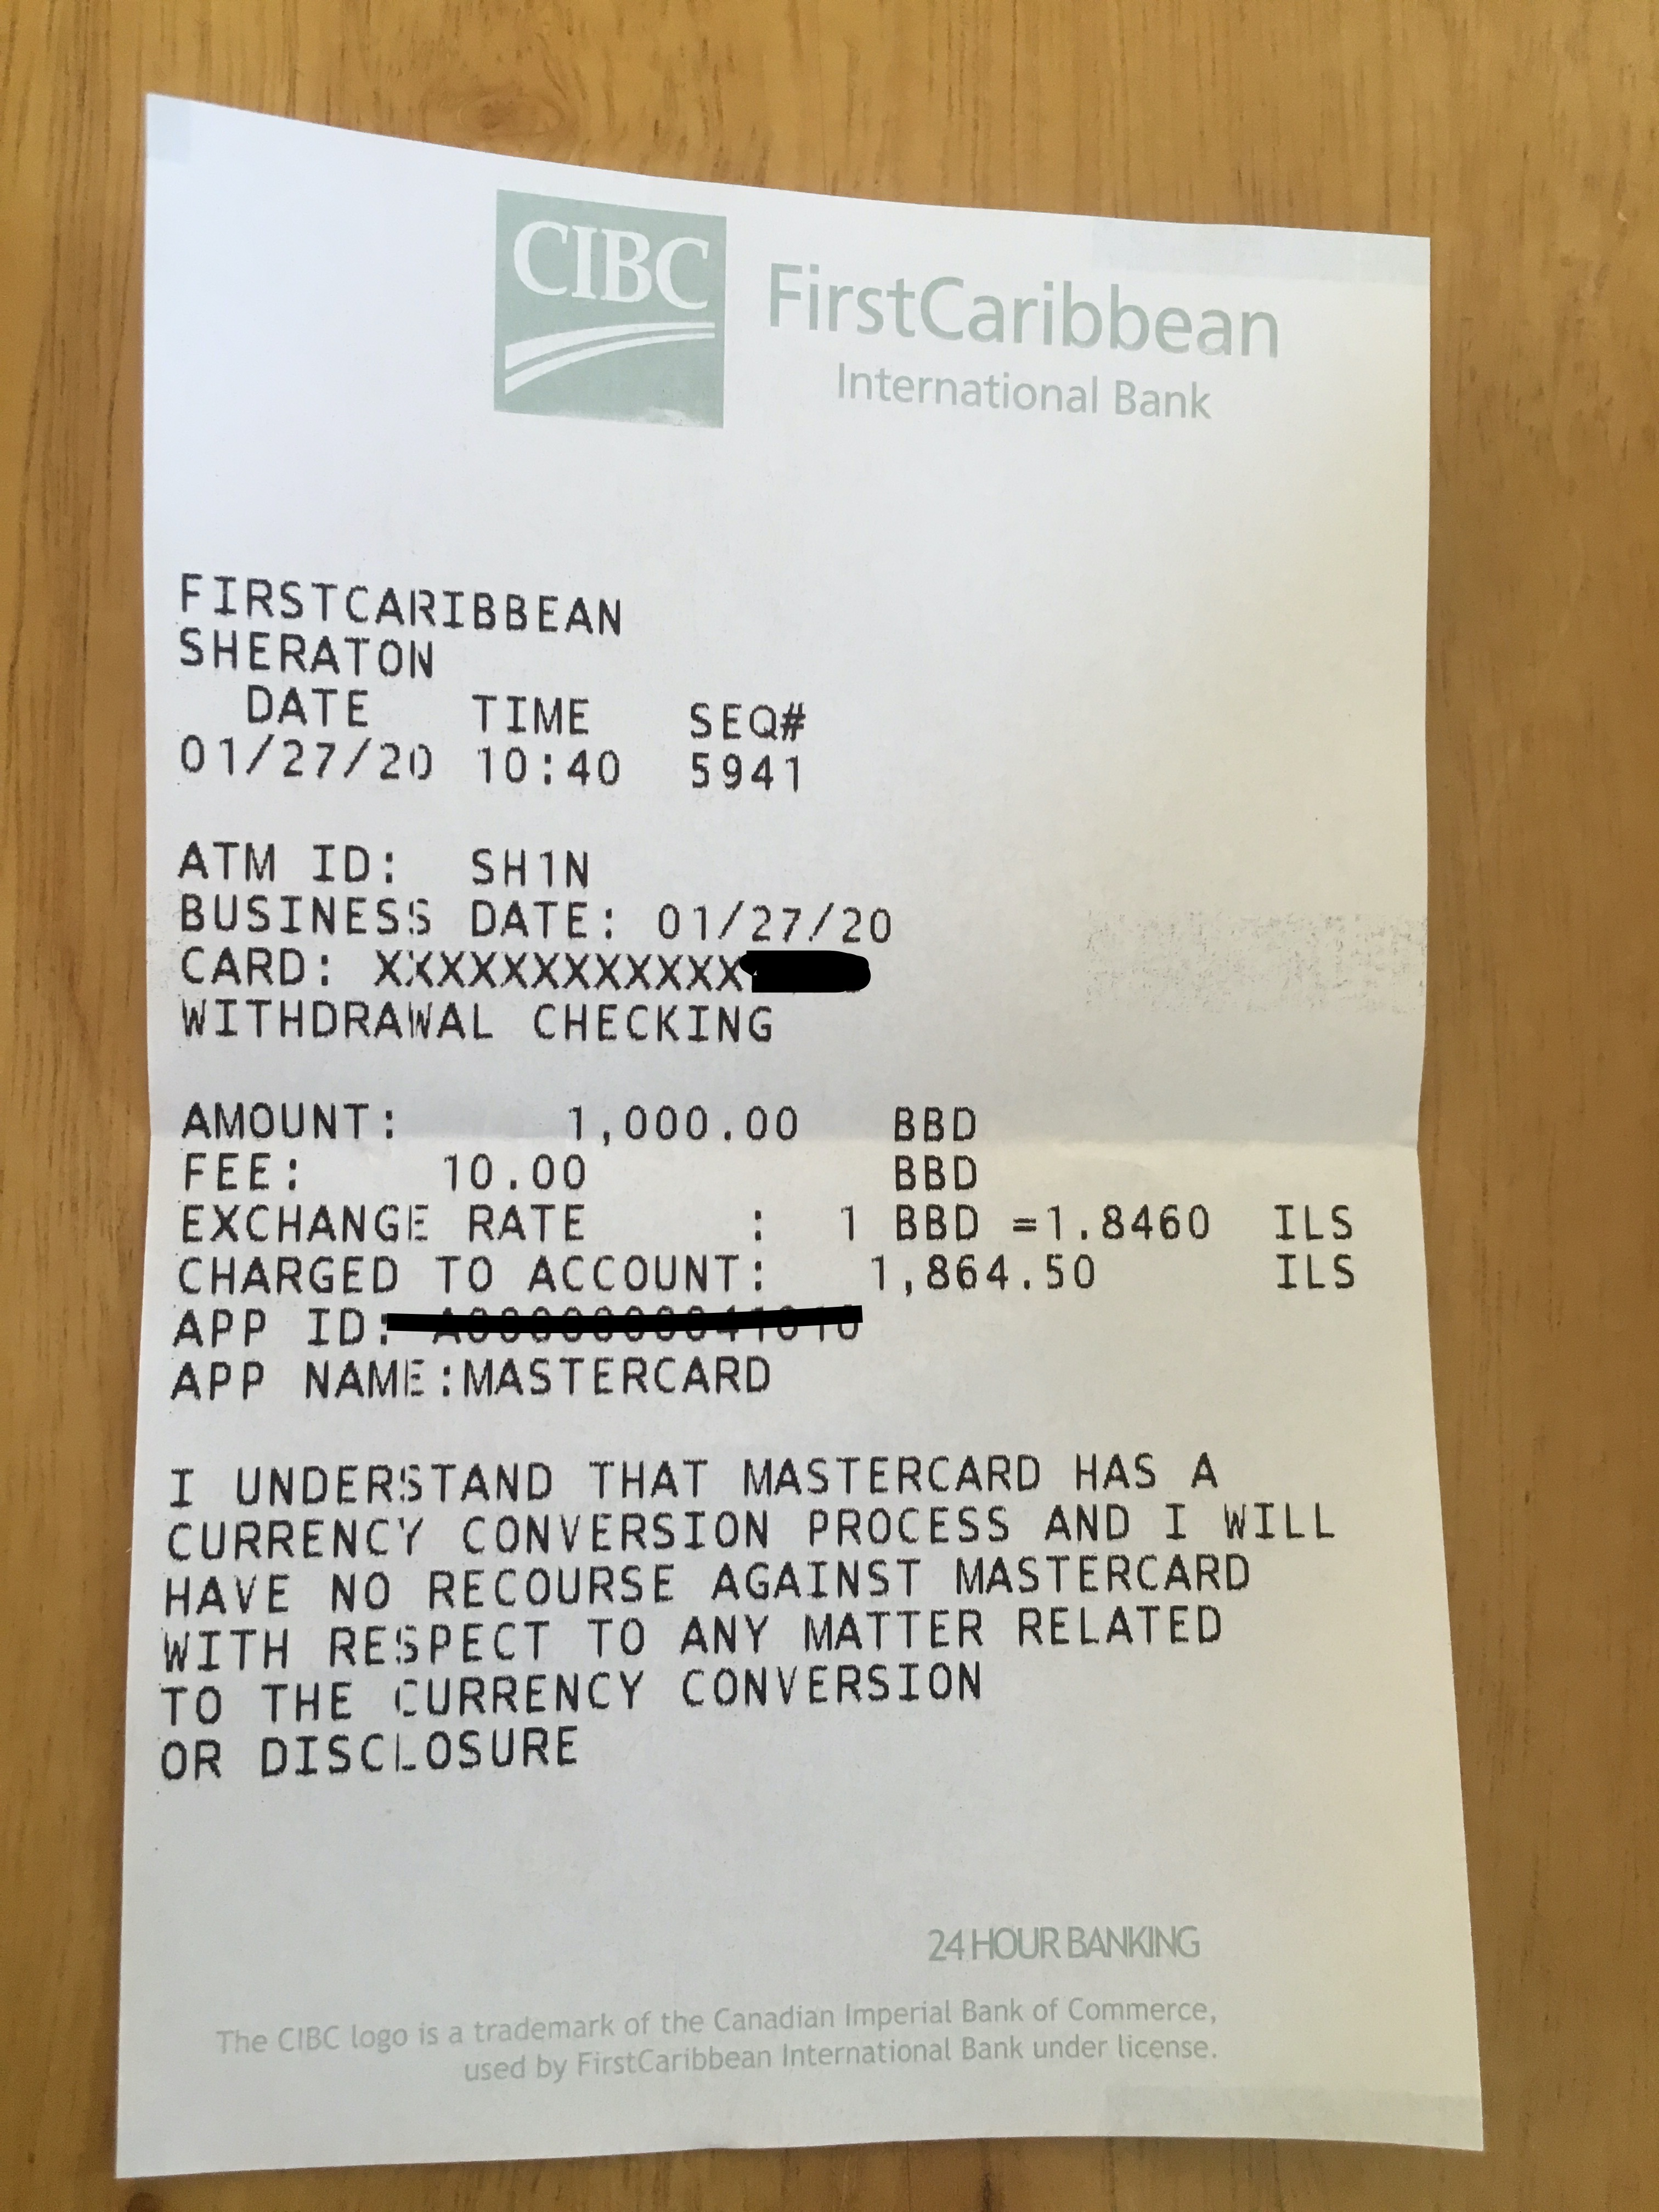 receipt showing ATM withdrawal charges plus exchange rate